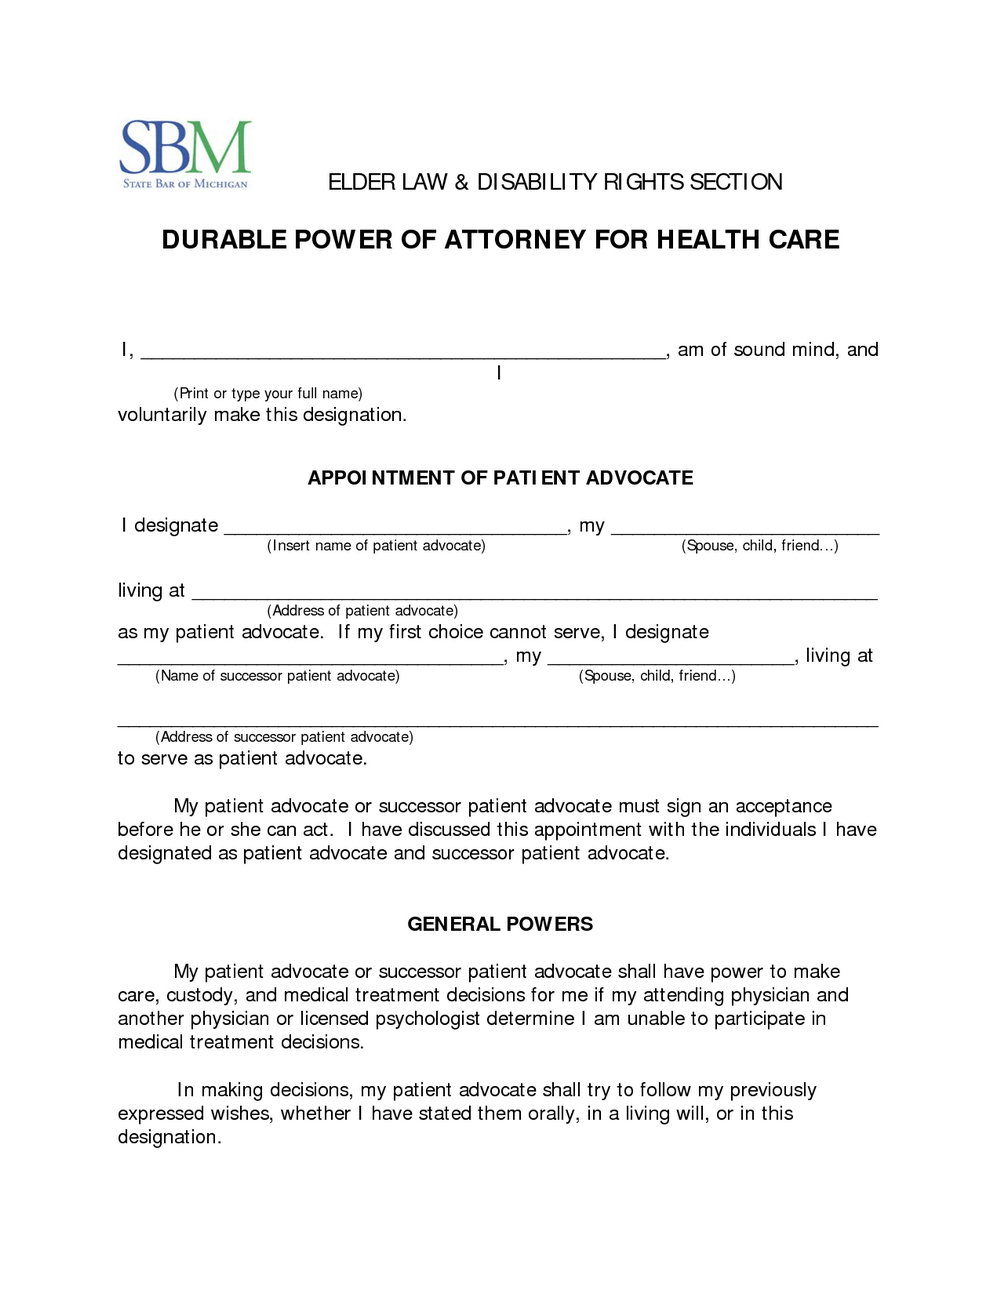 Durable Medical Power Of Attorney Form Mn